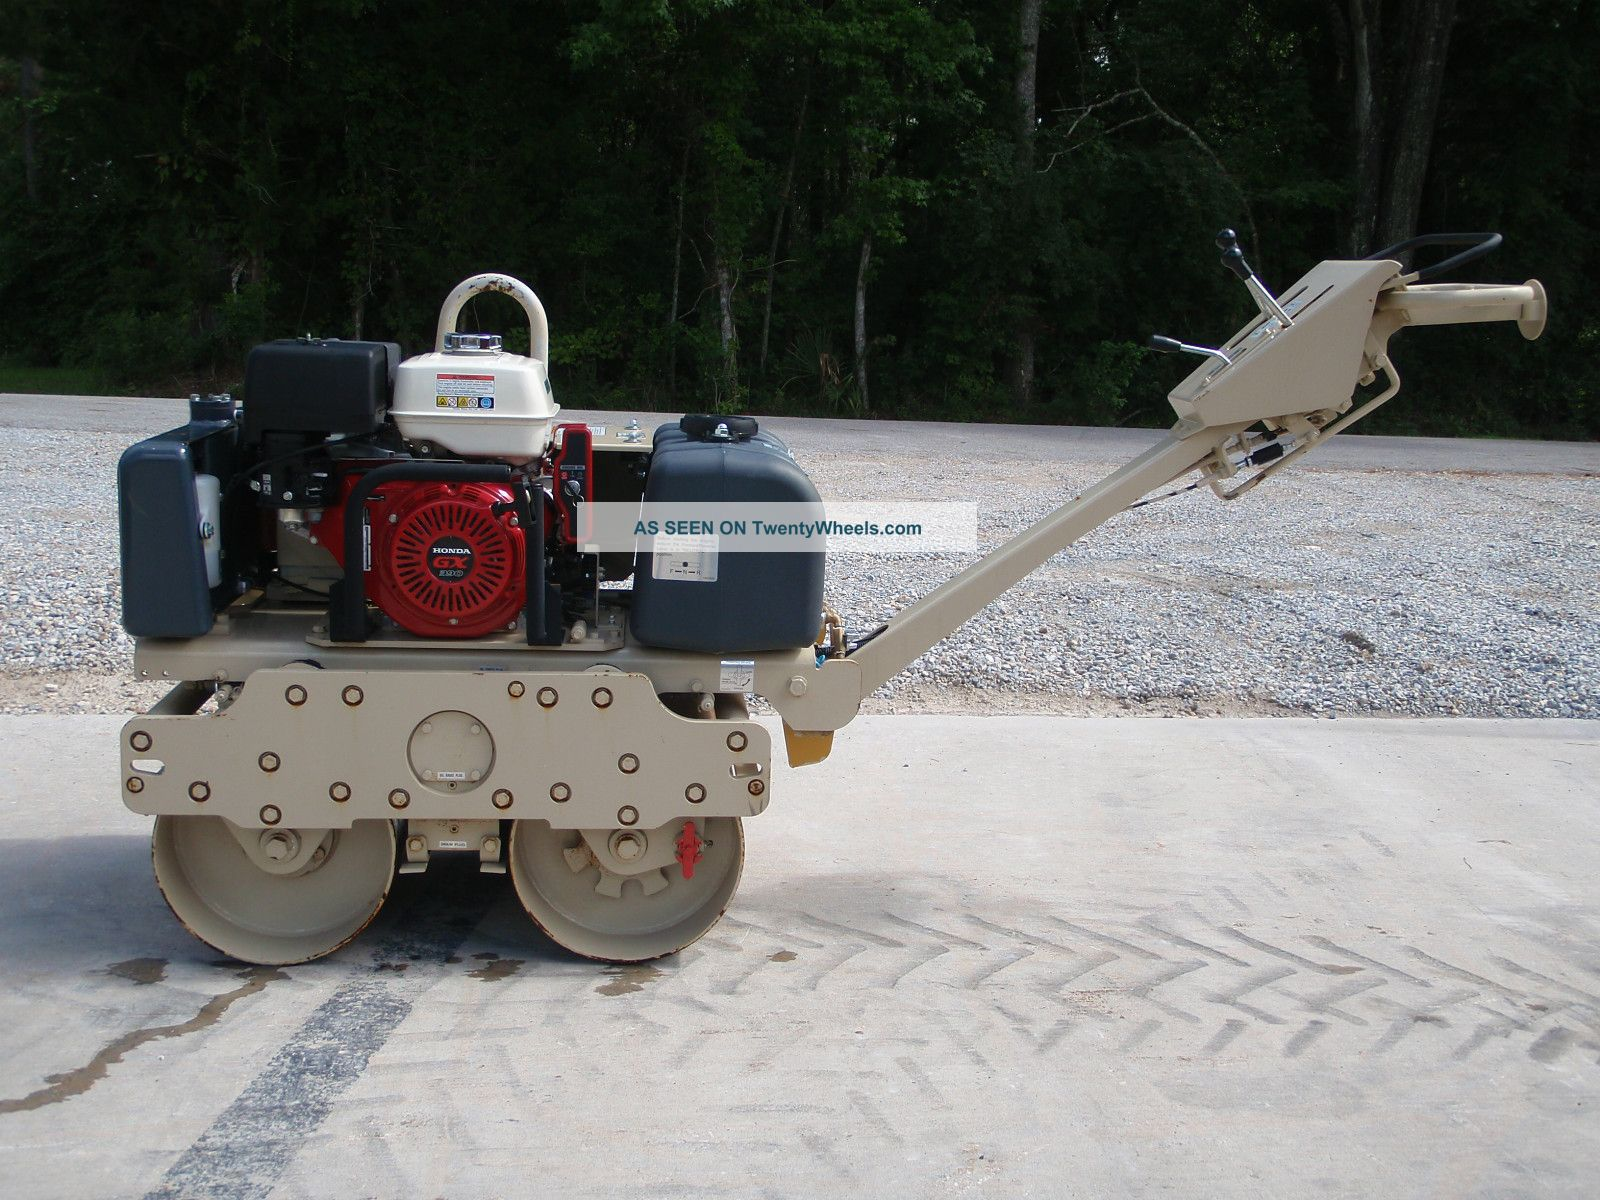 Construction Equipment Asphalt Roller Ingeroll - Rand Dx - 600 H Compactors & Rollers - Riding photo